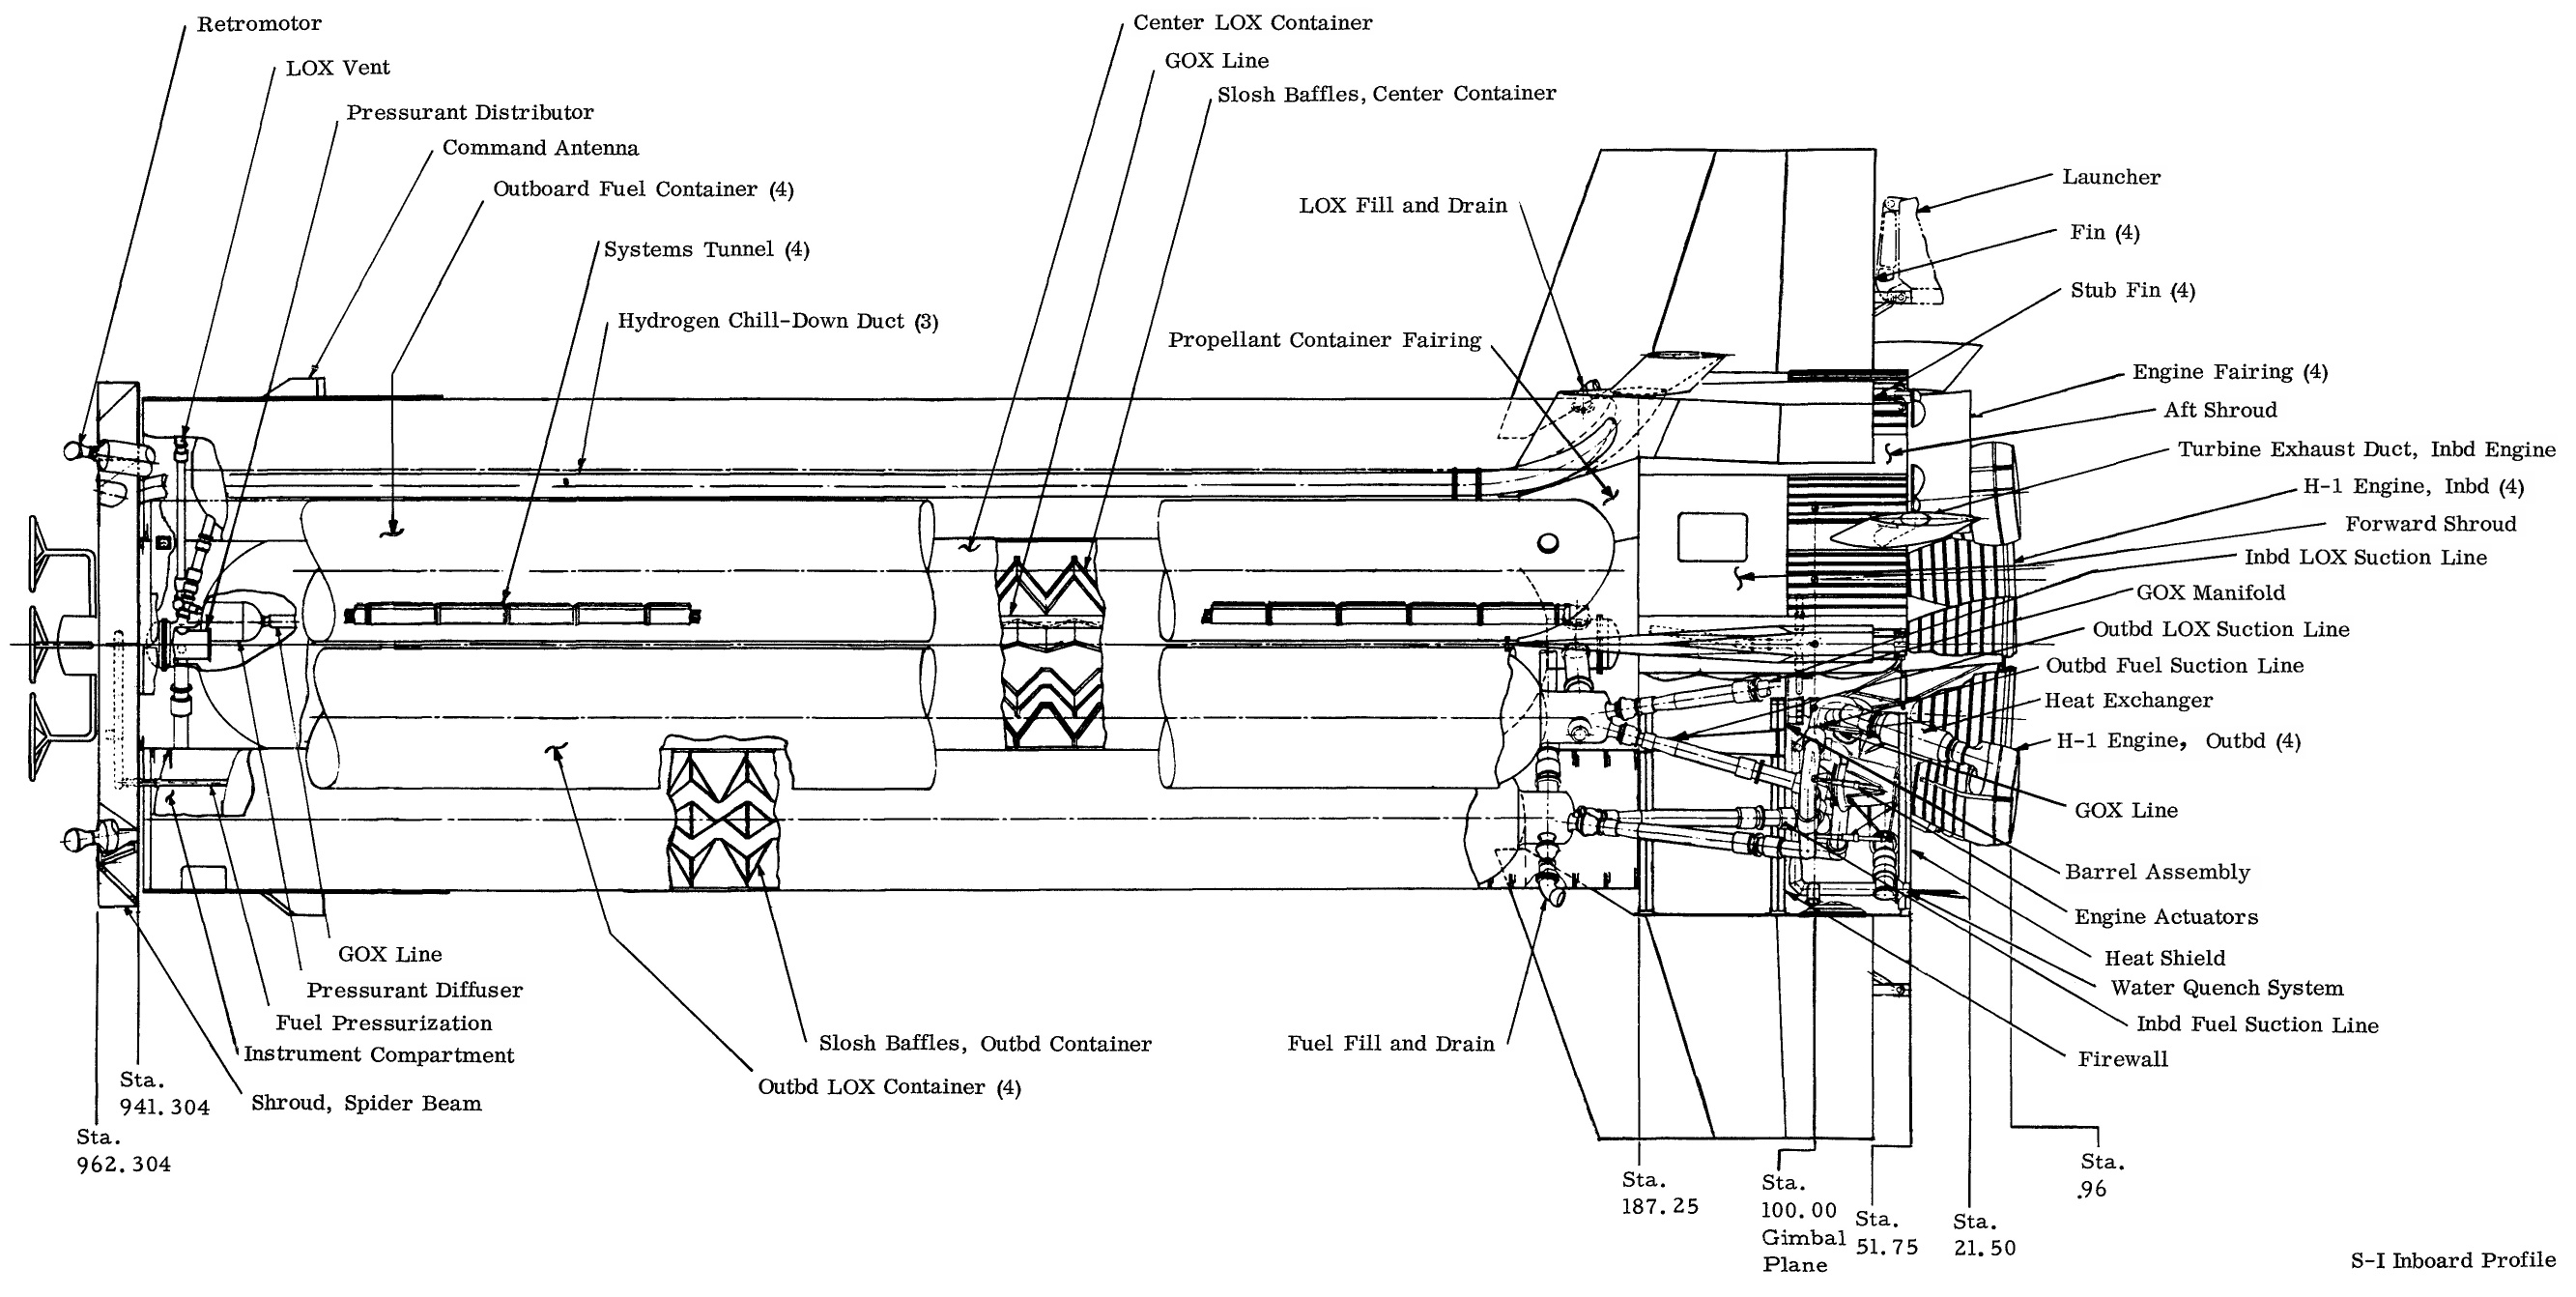 Snap Saturn Rocket Diagram Get Free Image About Wiring V Engine Stage Ib